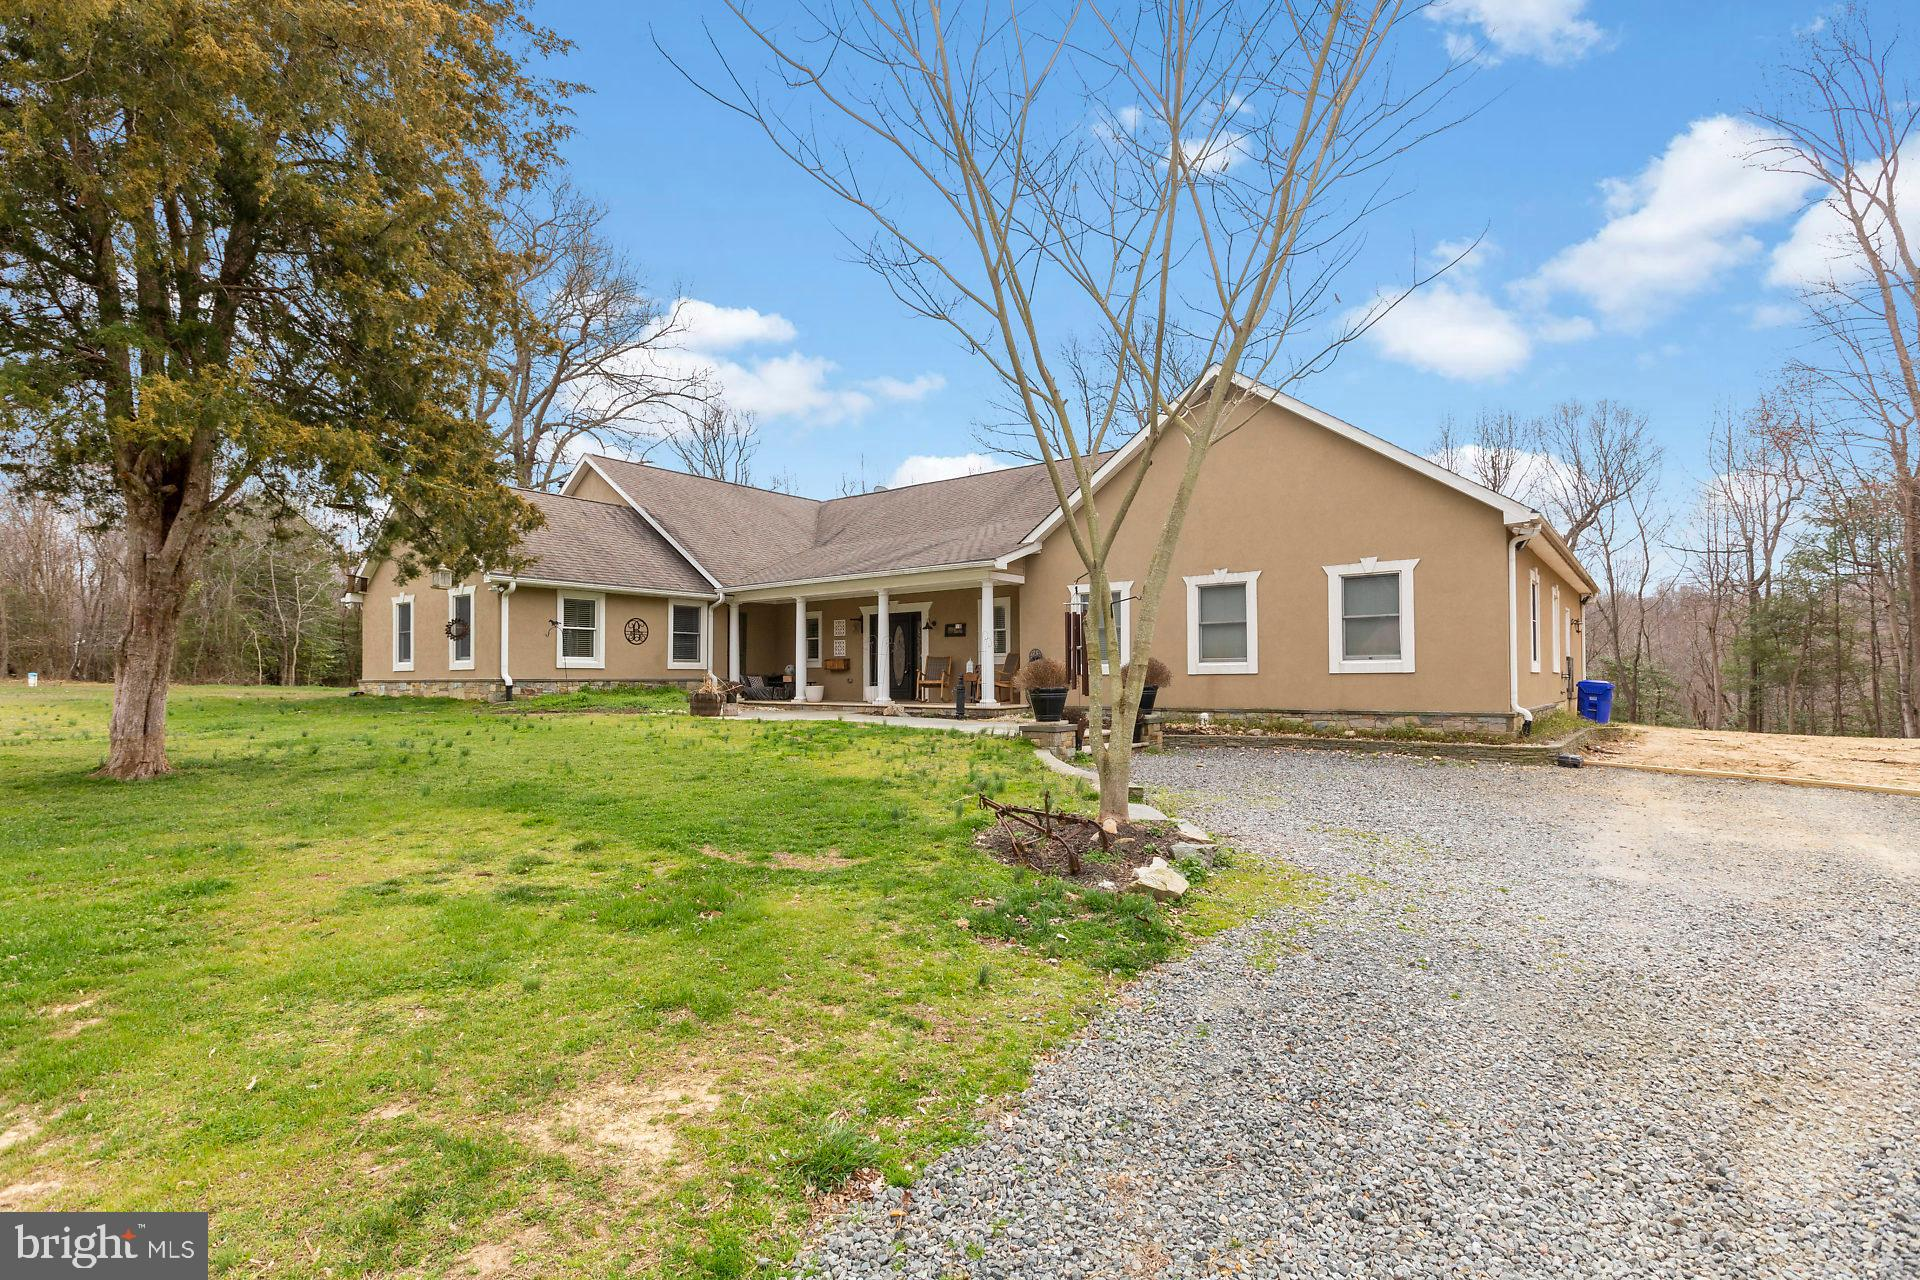 12343 HELEN FOWLERS PLACE, HUGHESVILLE, MD 20637